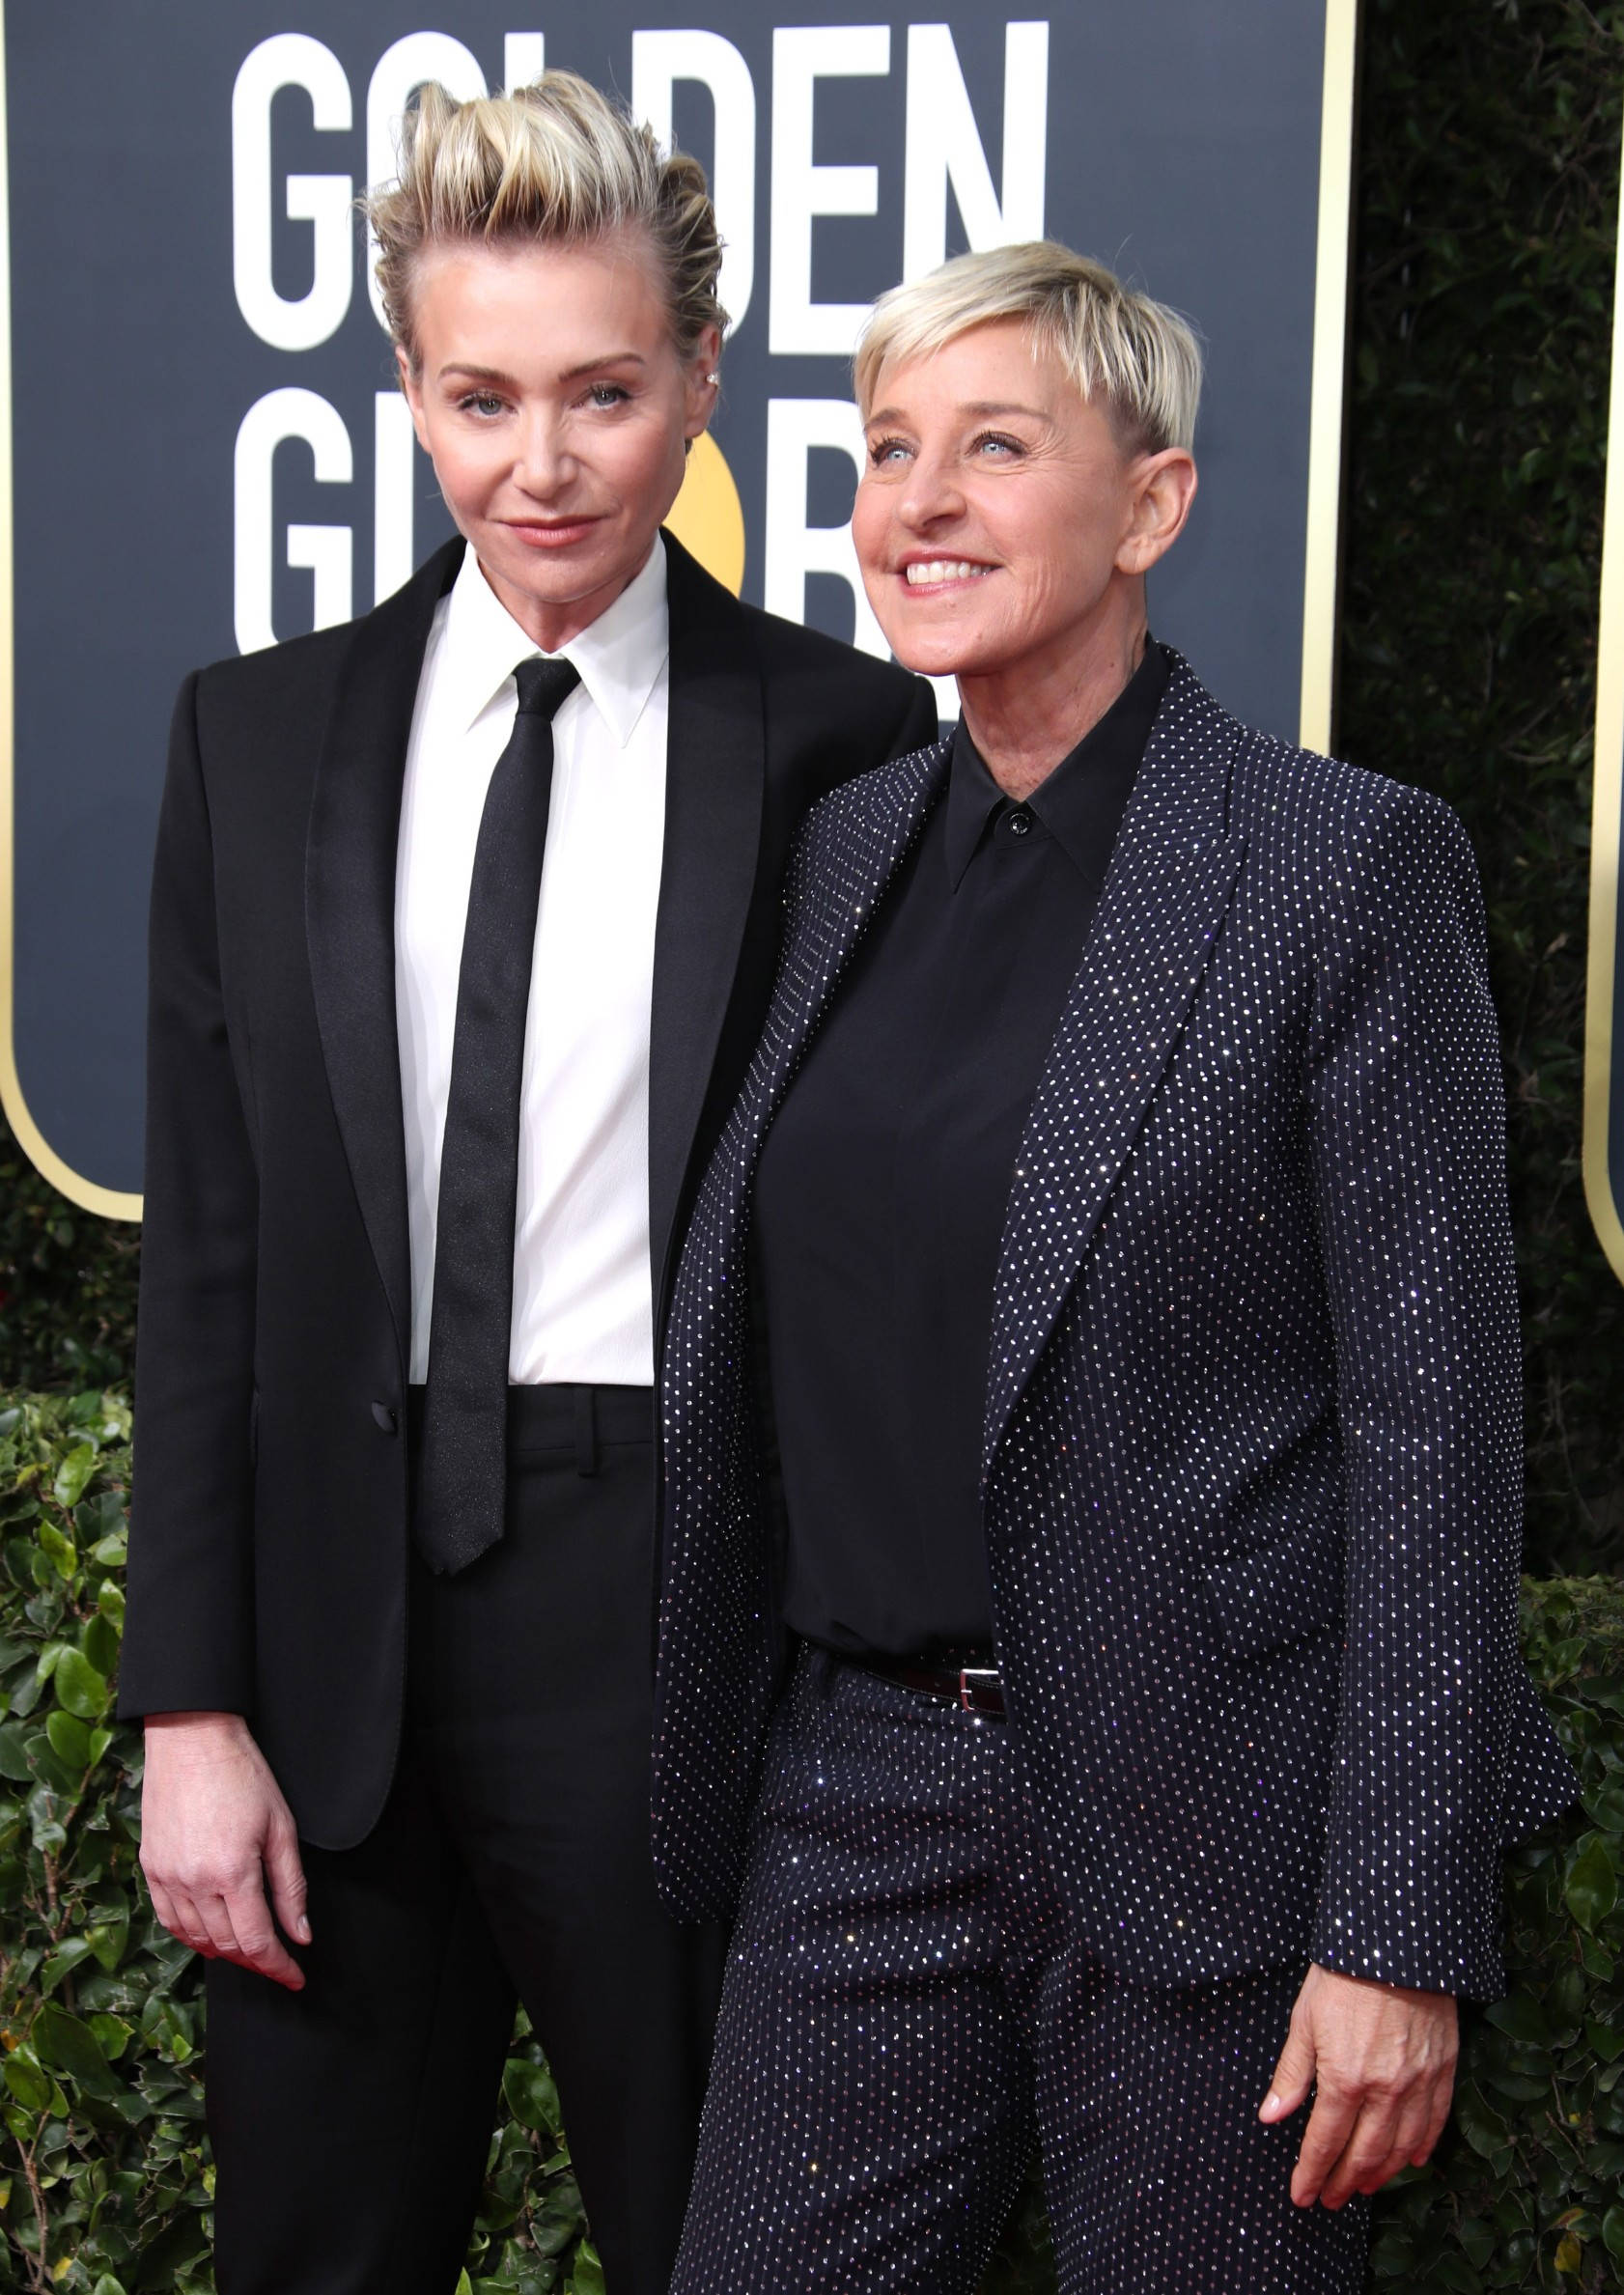 Portia de Rossi and Ellen DeGeneres 77th Annual Golden Globe Awards, Arrivals, Los Angeles, USA - 05 Jan 2020,Image: 491183370, License: Rights-managed, Restrictions: , Model Release: no, Credit line: - / Shutterstock Editorial / Profimedia